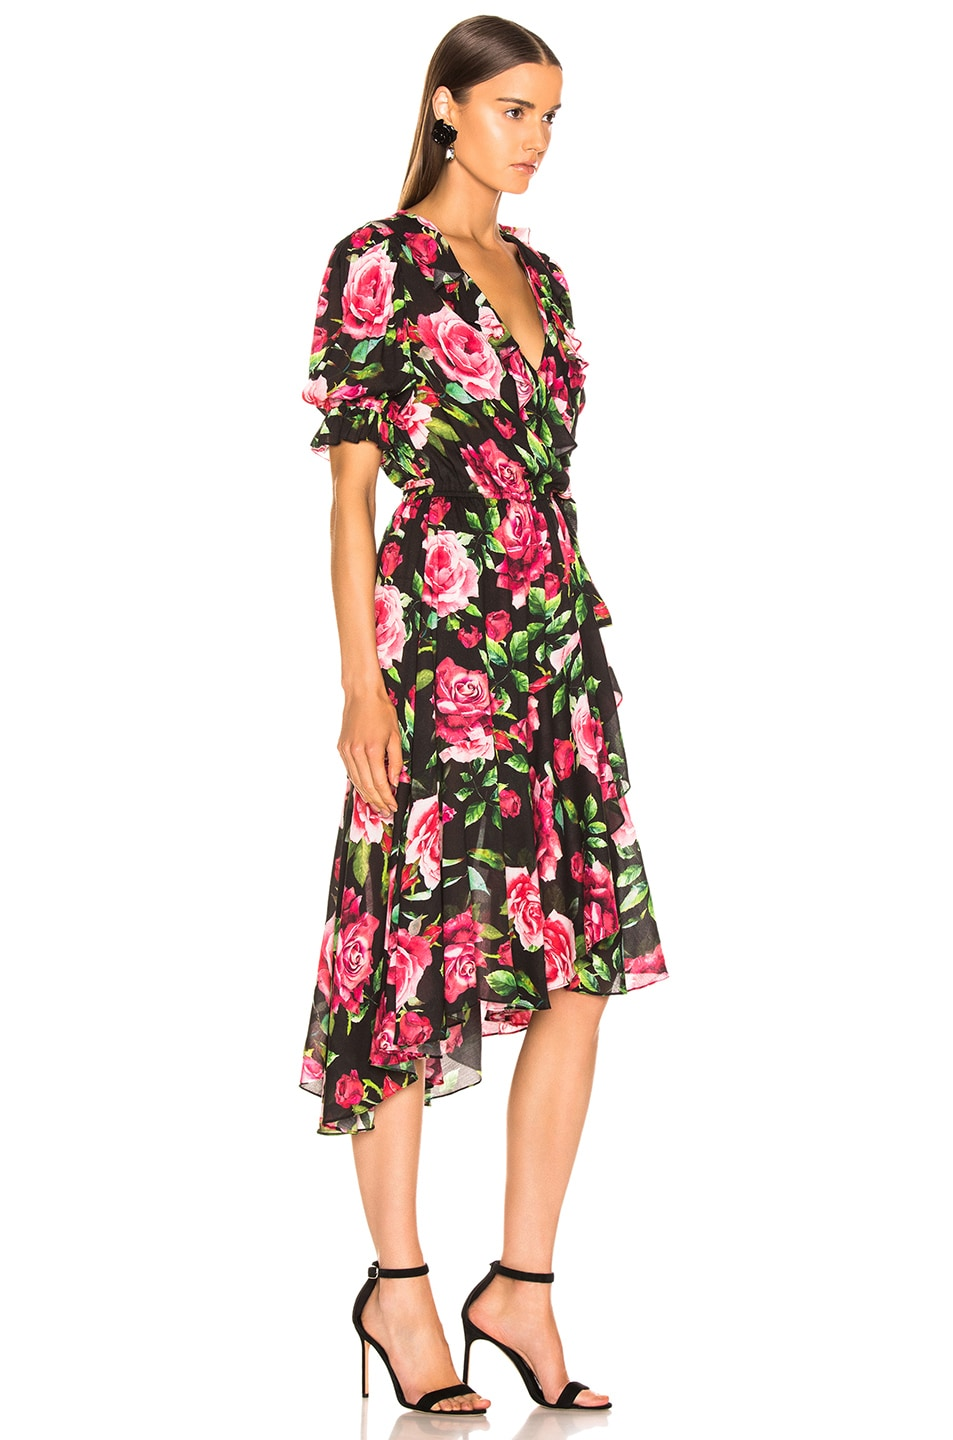 Image 2 of ICONS Objects of Devotion Cha Cha Wrap Dress in Black Rose